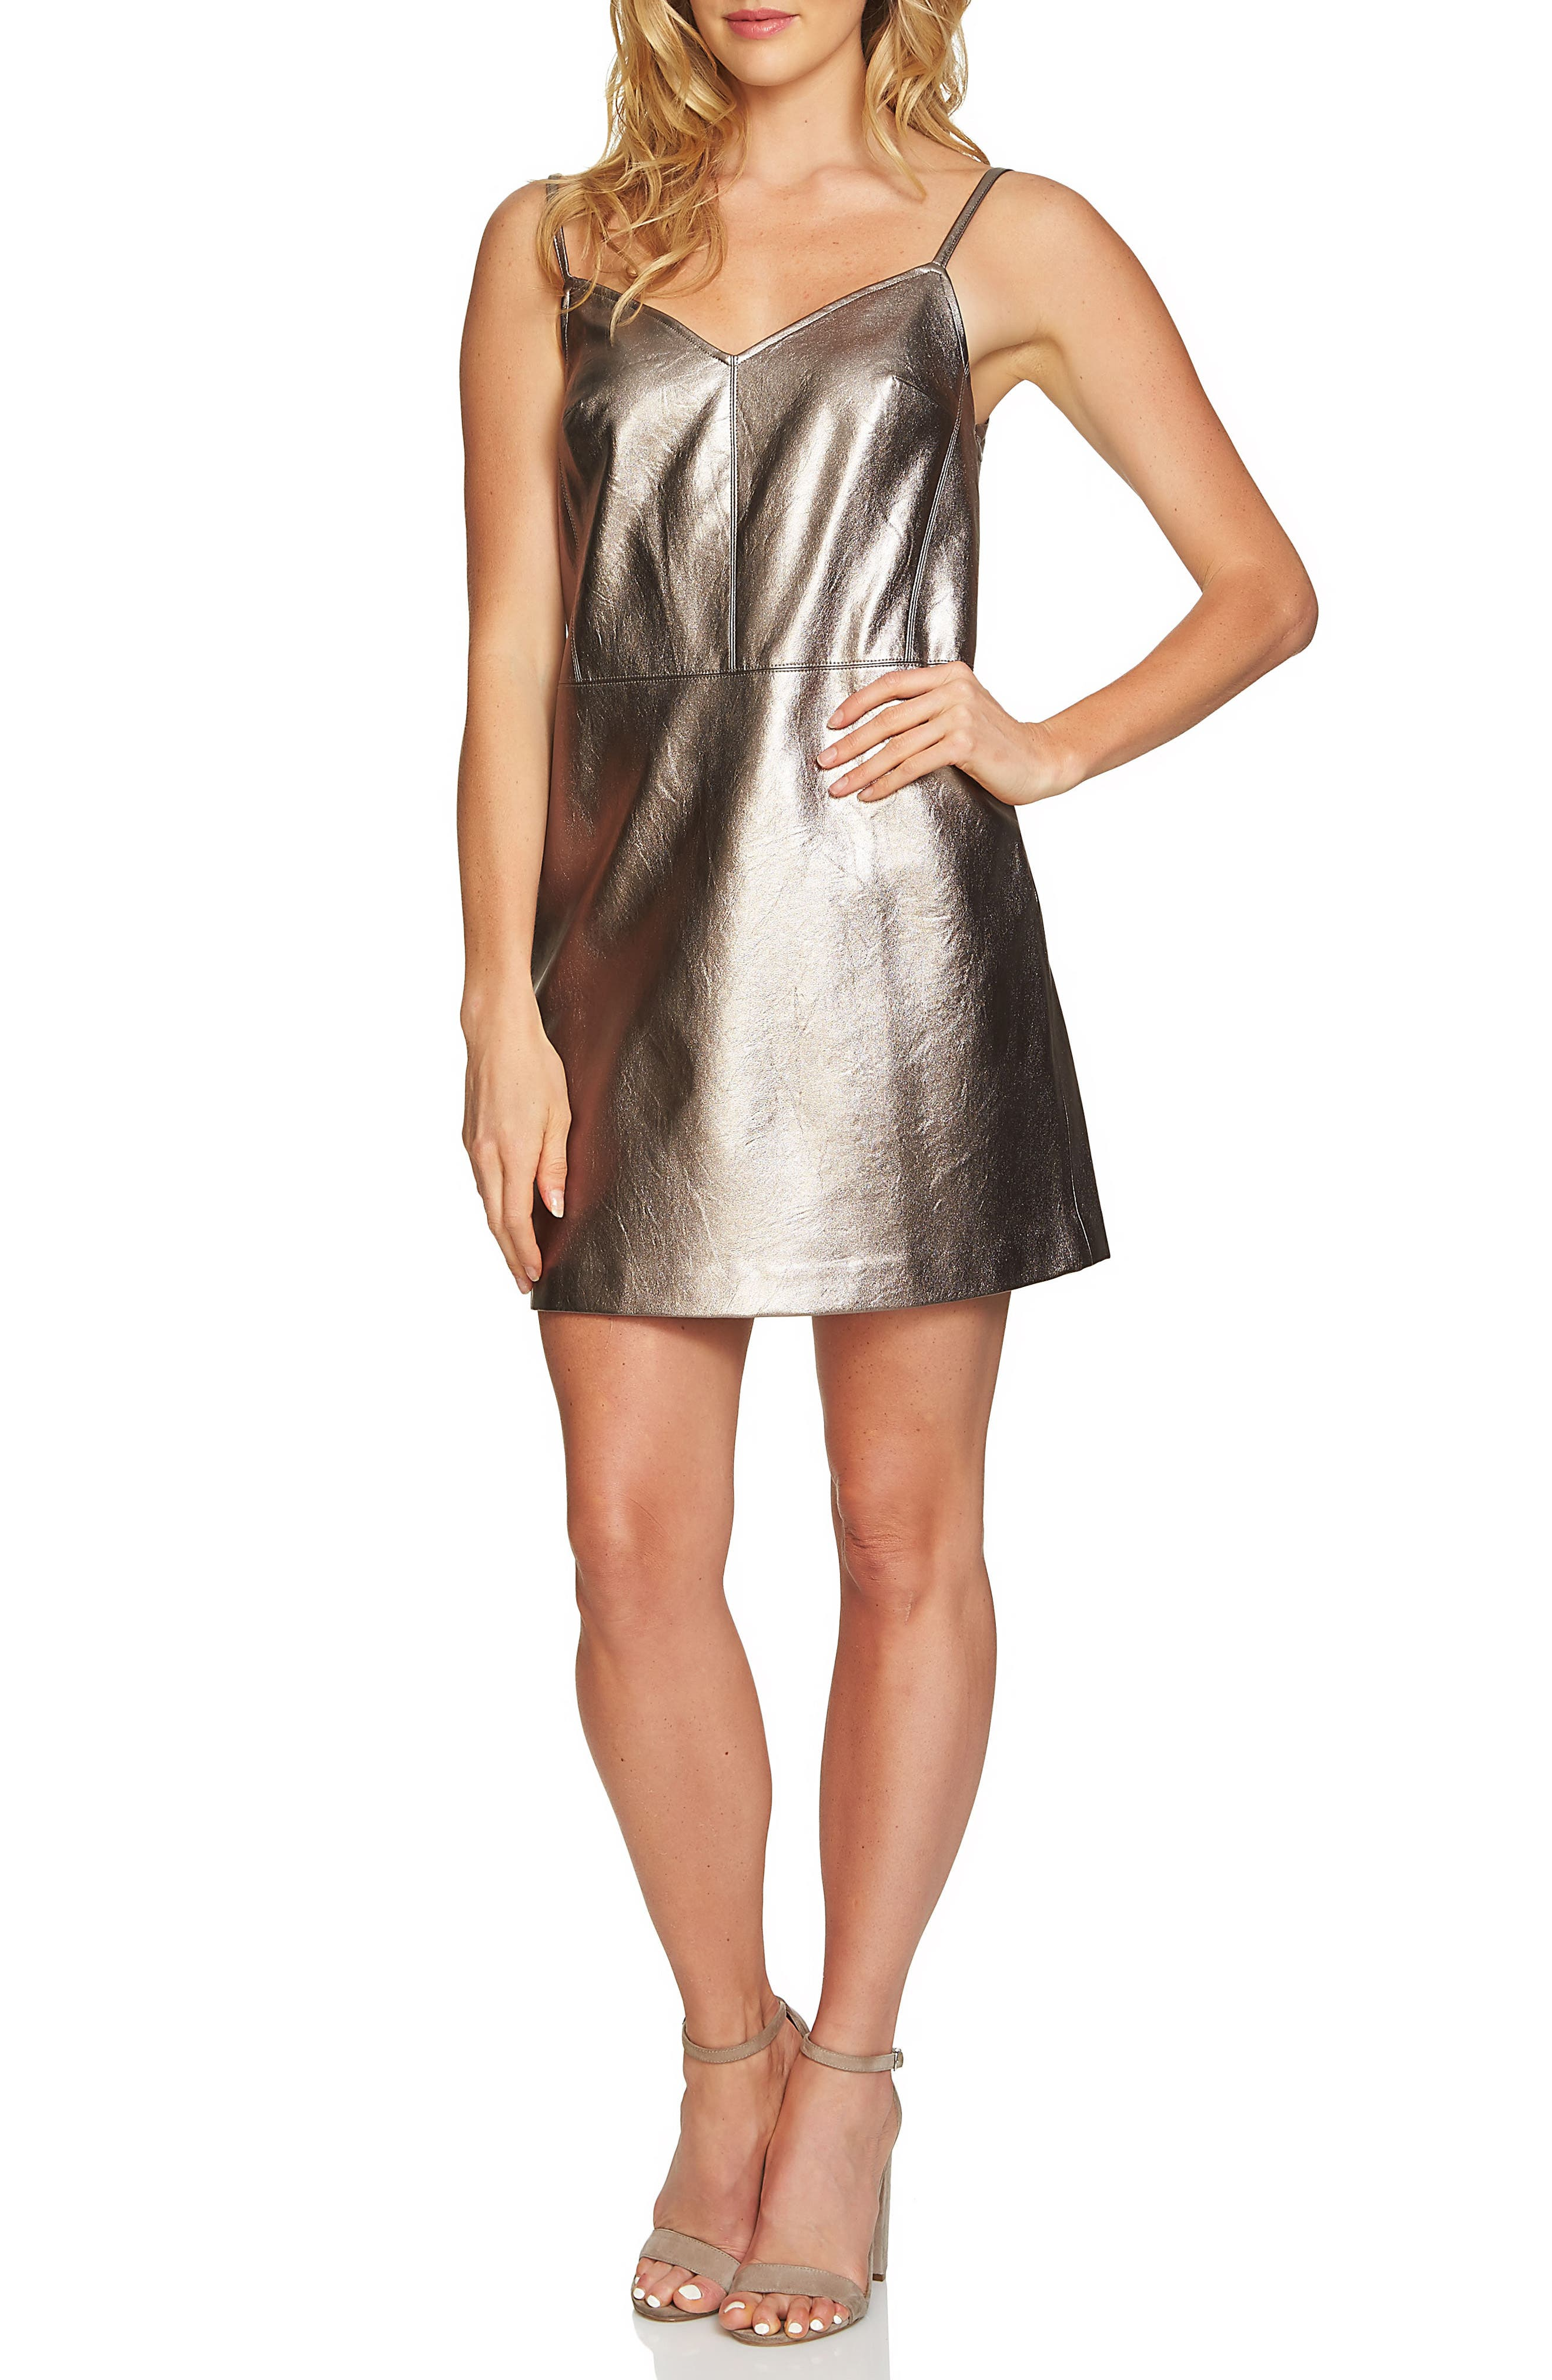 Alternate Image 1 Selected - 1.STATE Metallic Faux Leather Slipdress